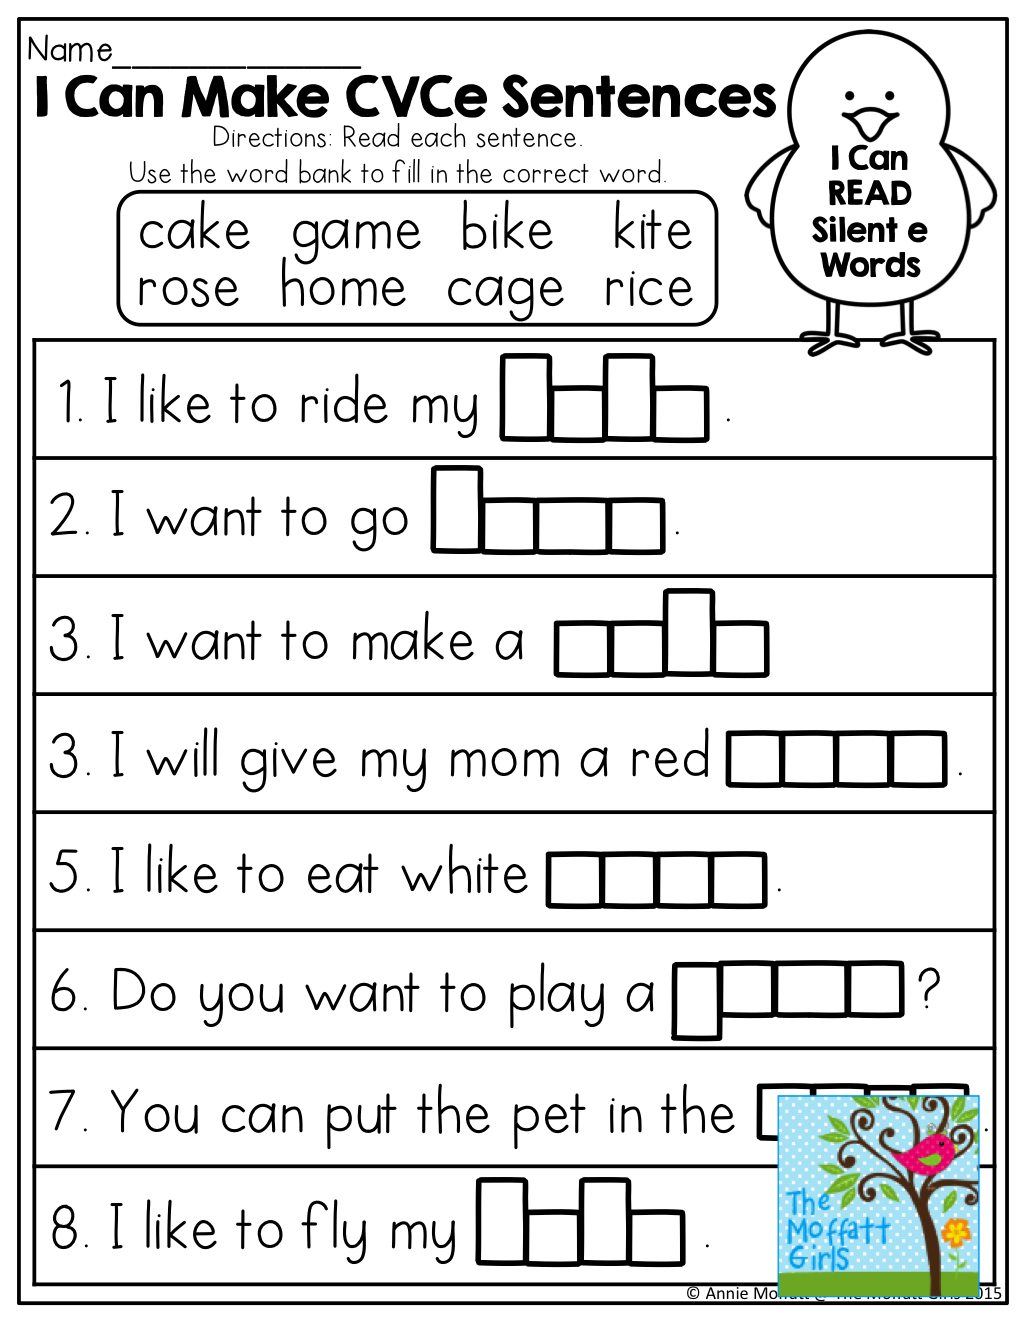 hight resolution of Cloze Sentence Worksheets Free   Printable Worksheets and Activities for  Teachers